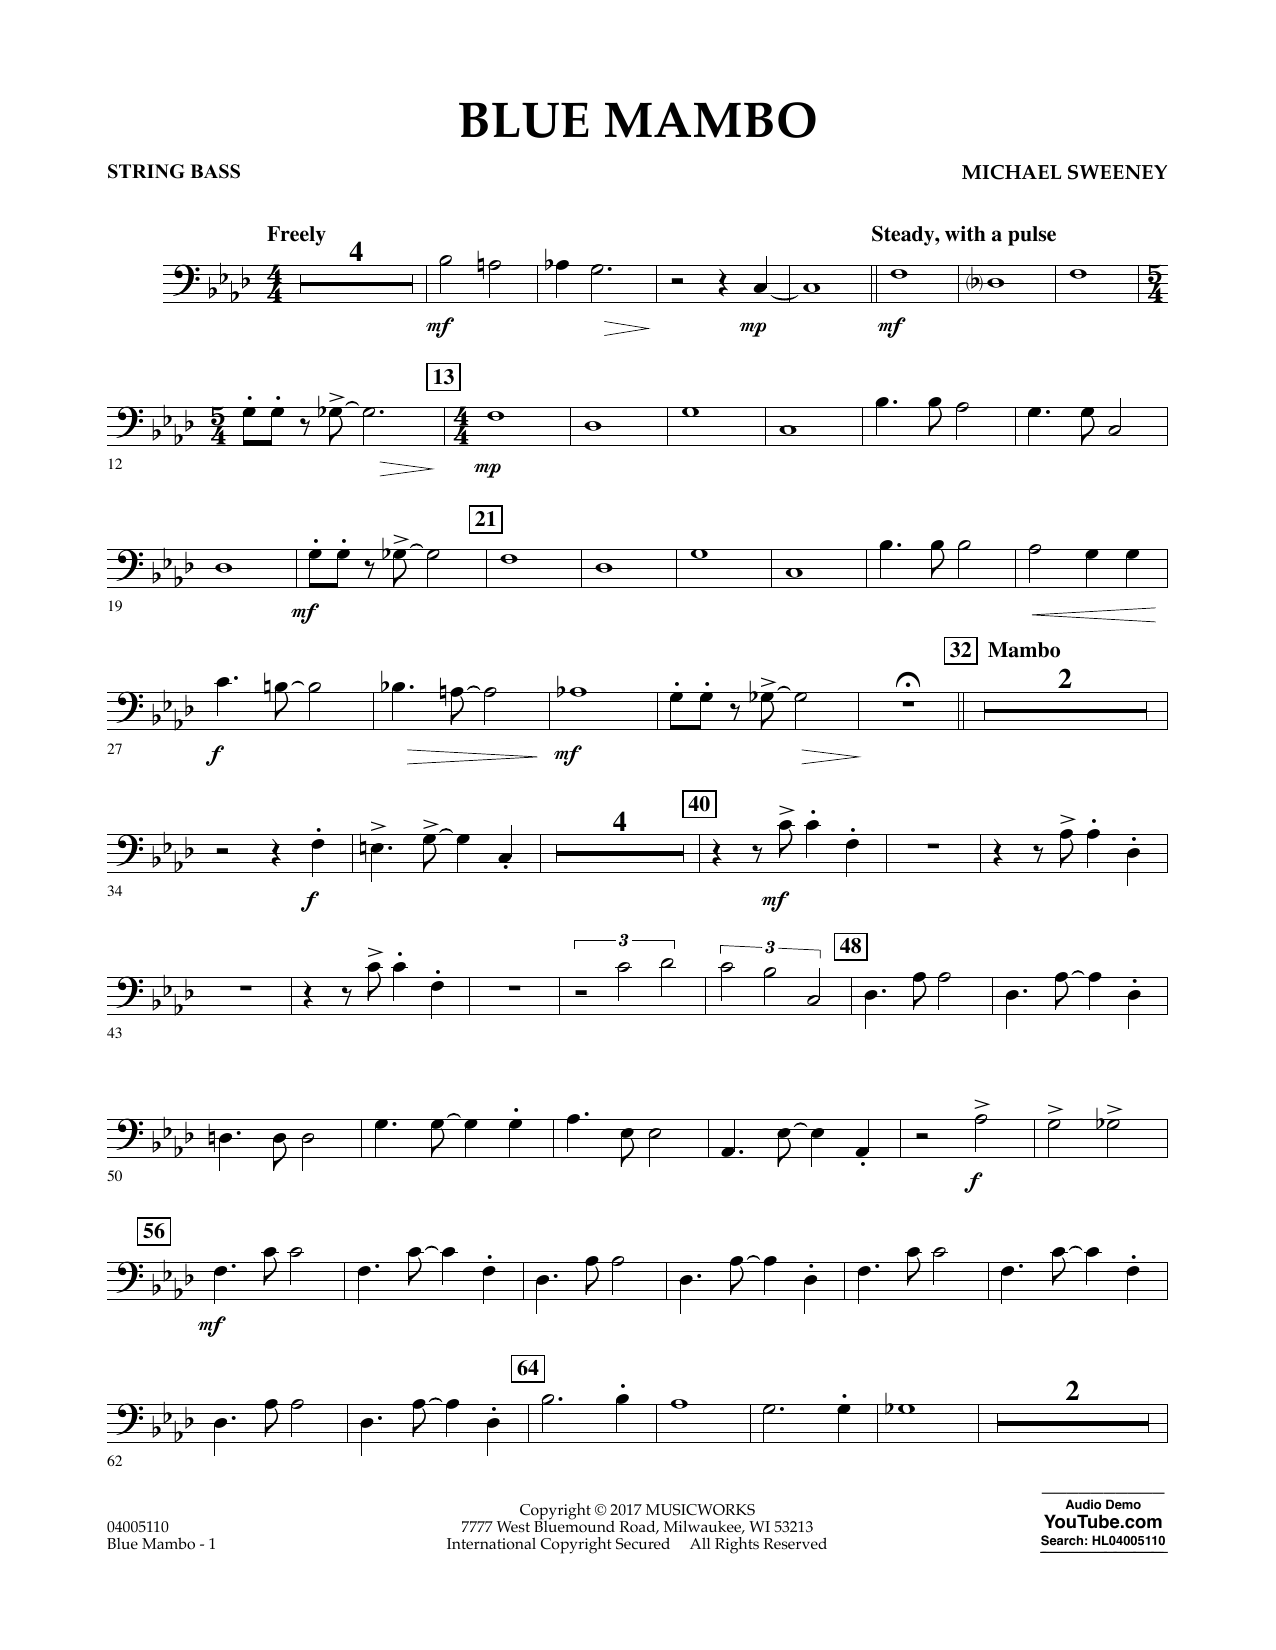 Blue Mambo - String Bass Sheet Music